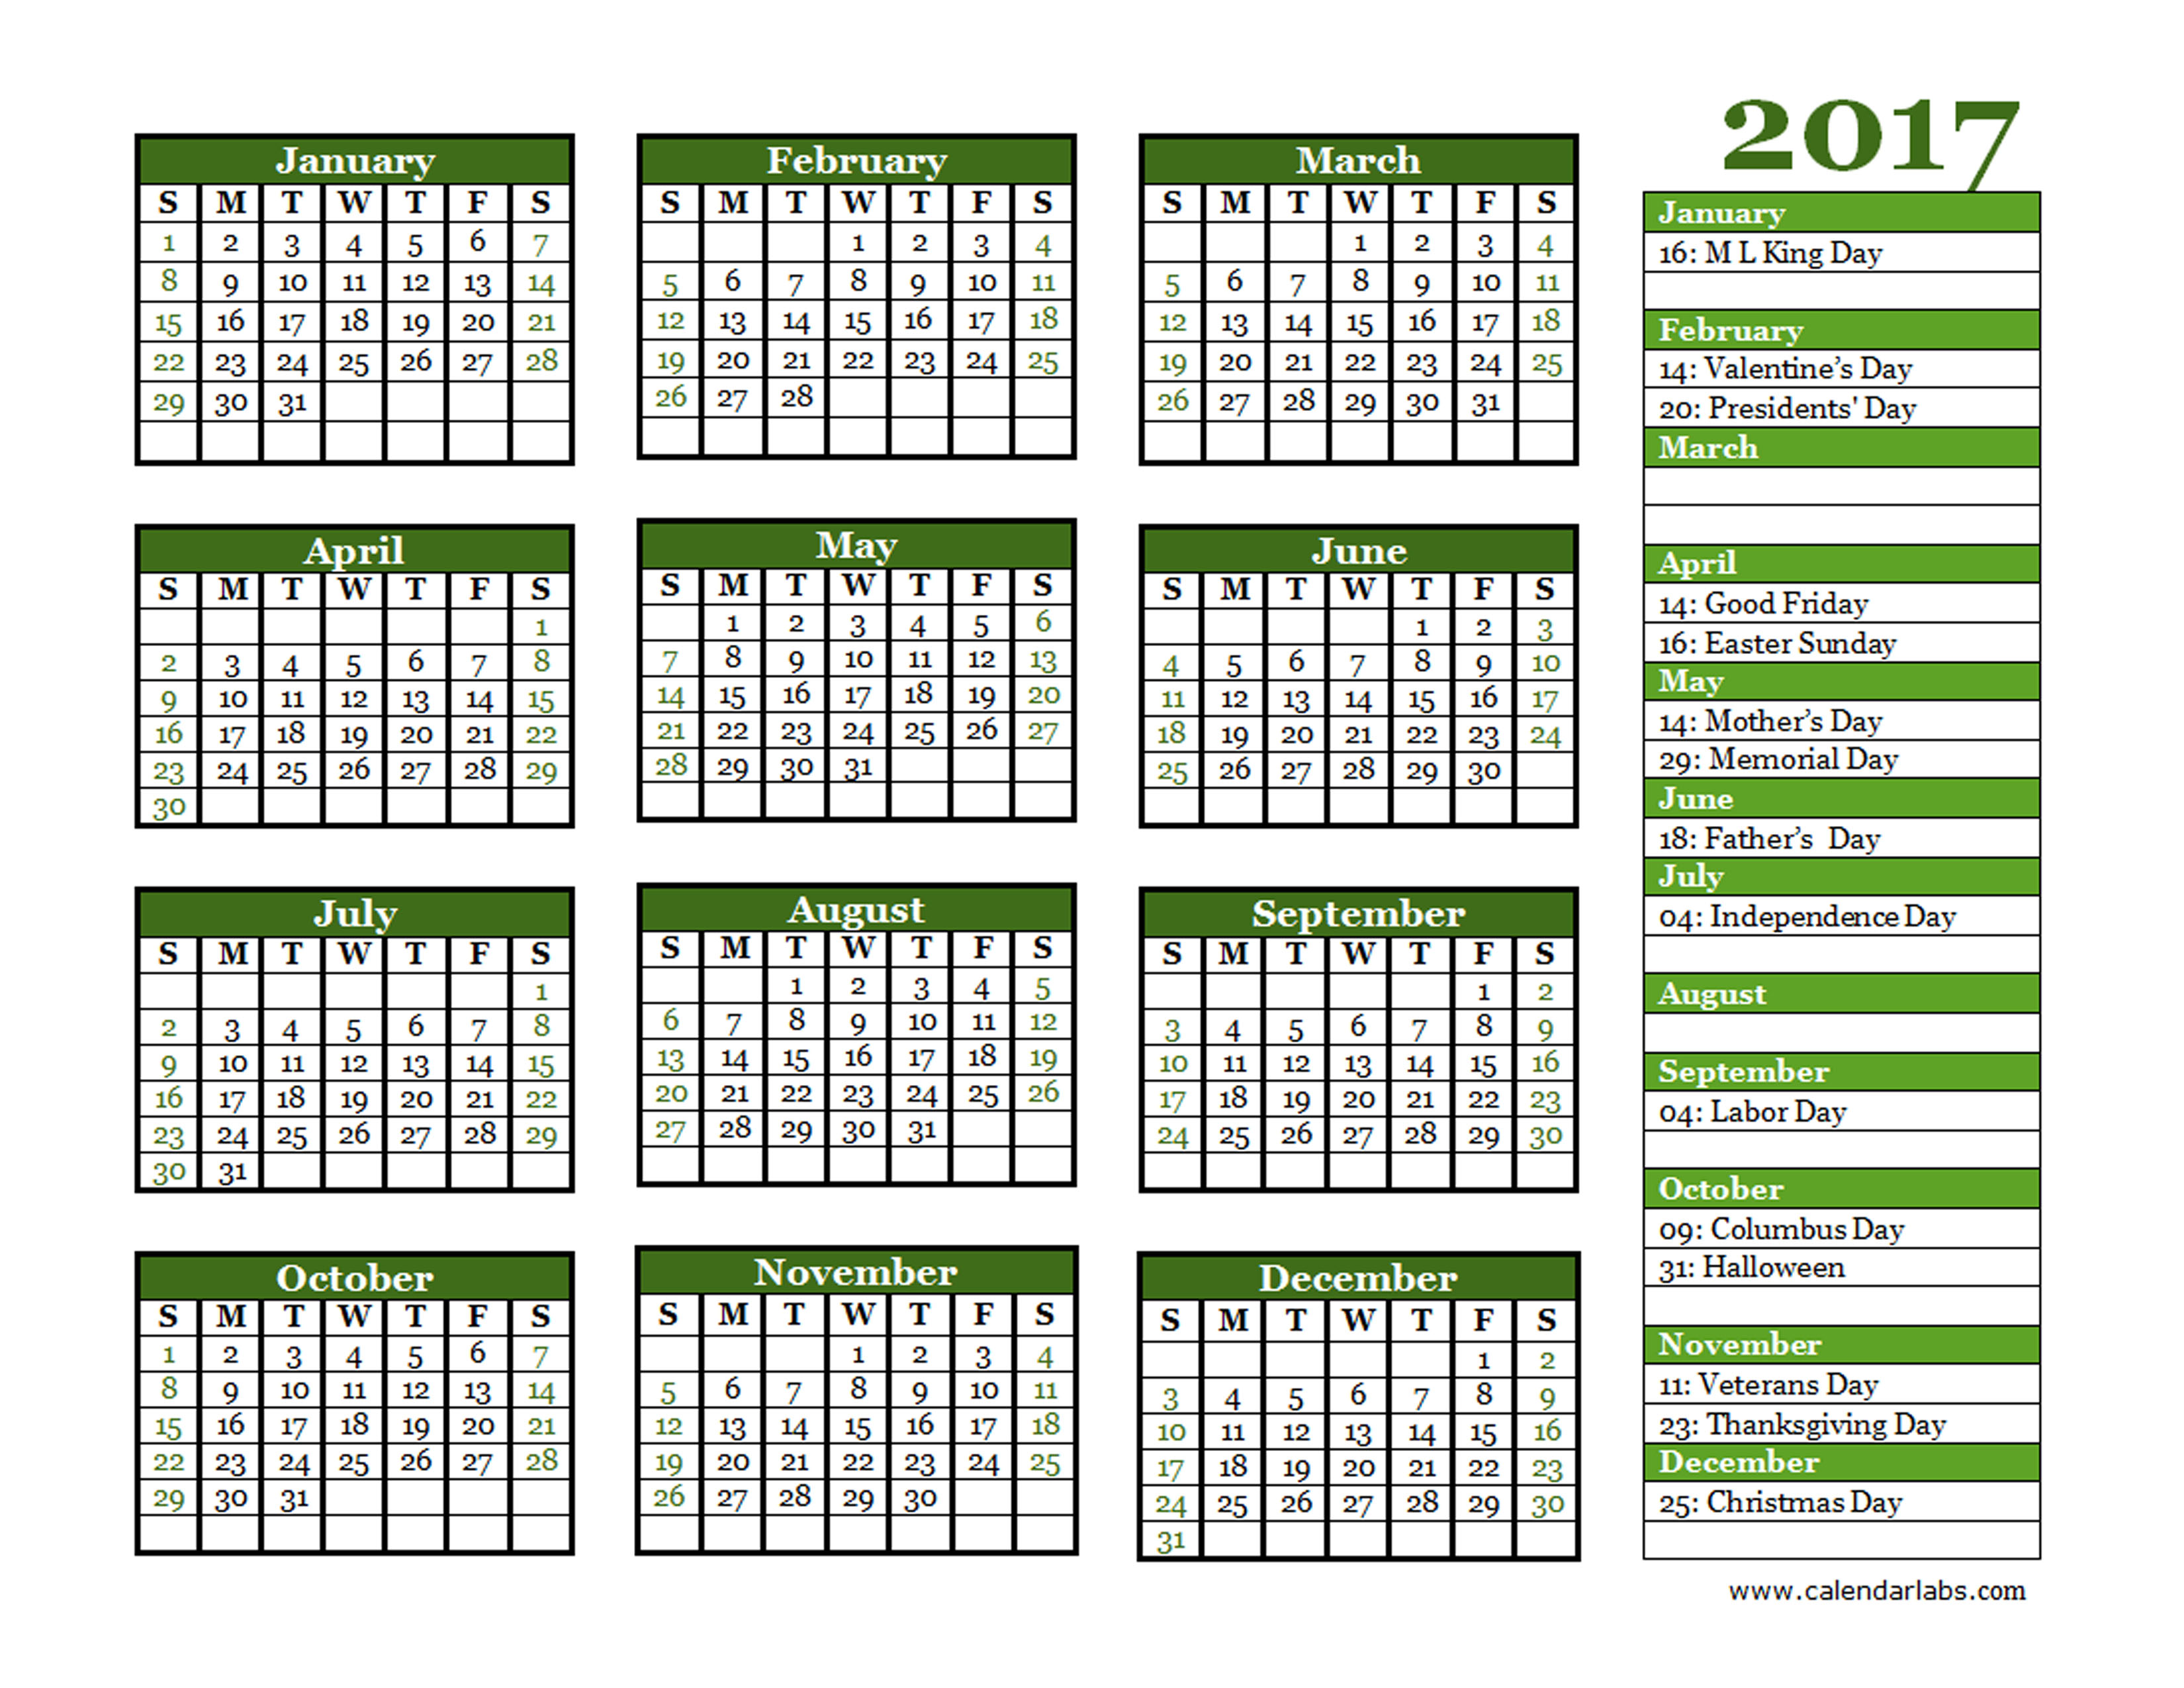 Calendar Labs Templates : Yearly calendar landscape free printable templates